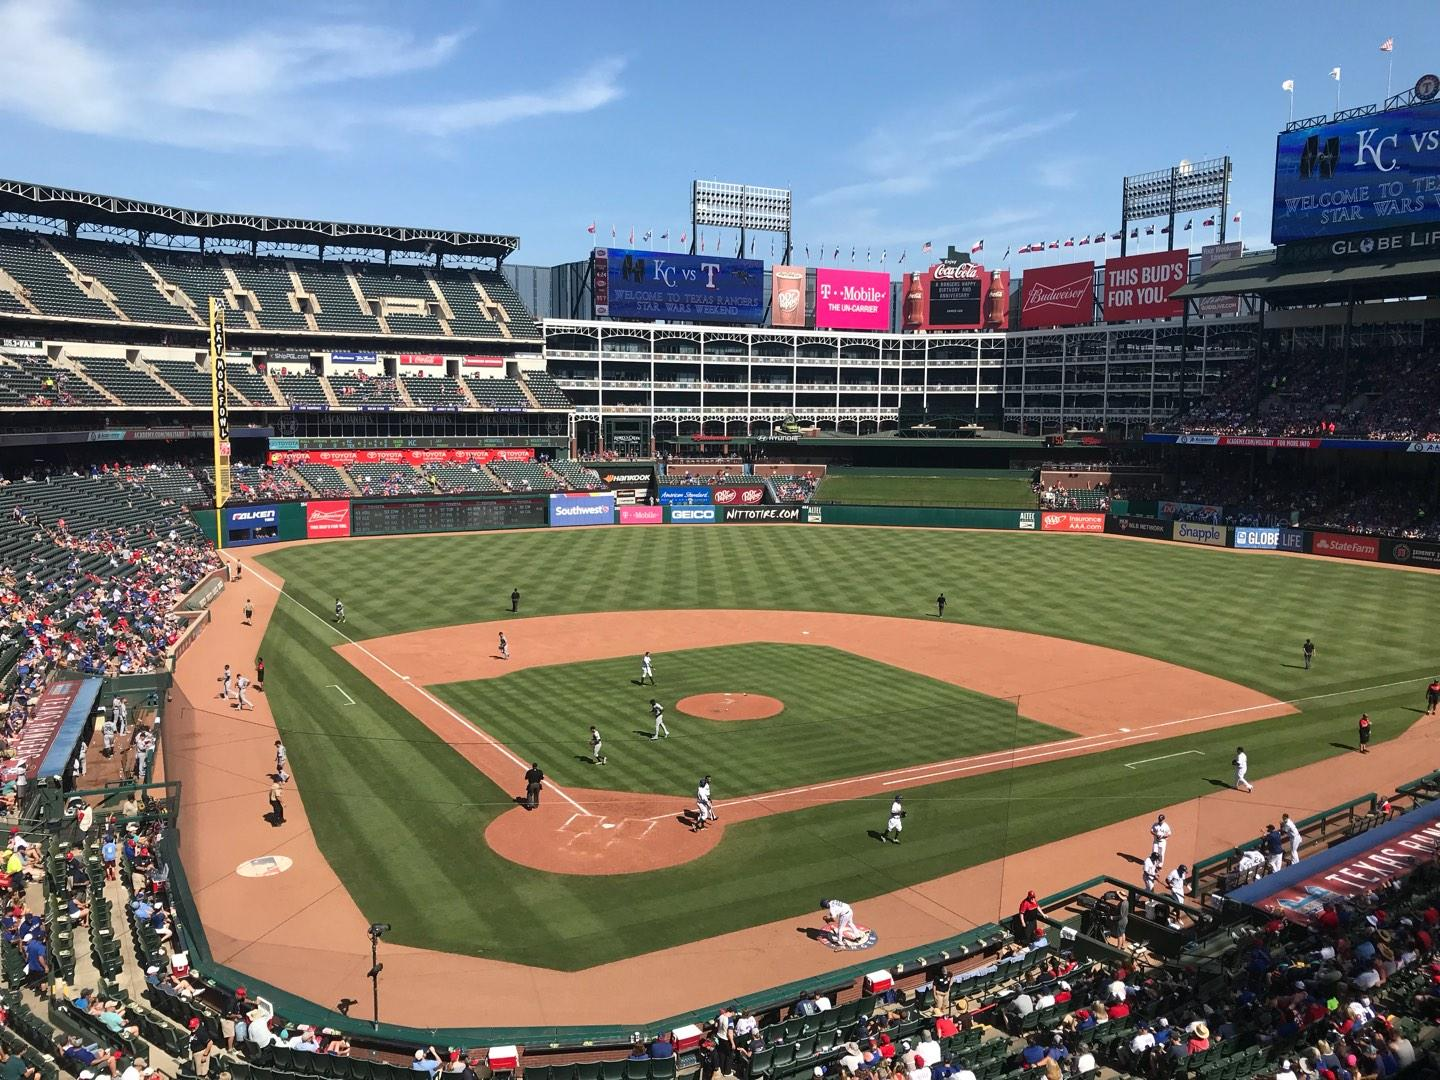 Globe Life Park in Arlington Section 228 Row 1 Seat 7